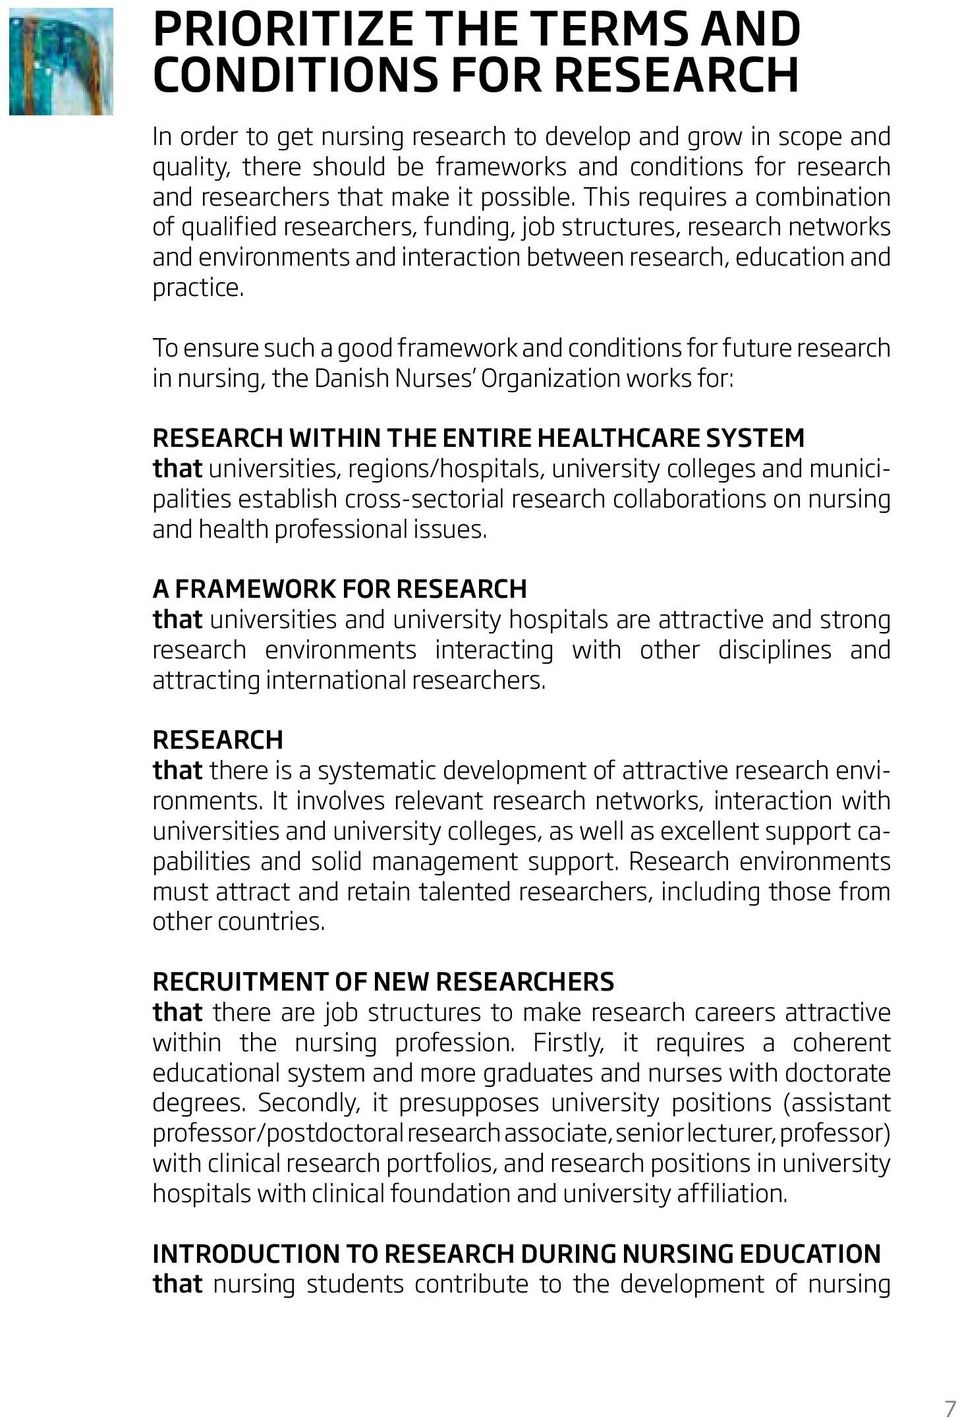 To ensure such a good framework and conditions for future research in nursing, the Danish Nurses Organization works for: Research within the entire healthcare system that universities,